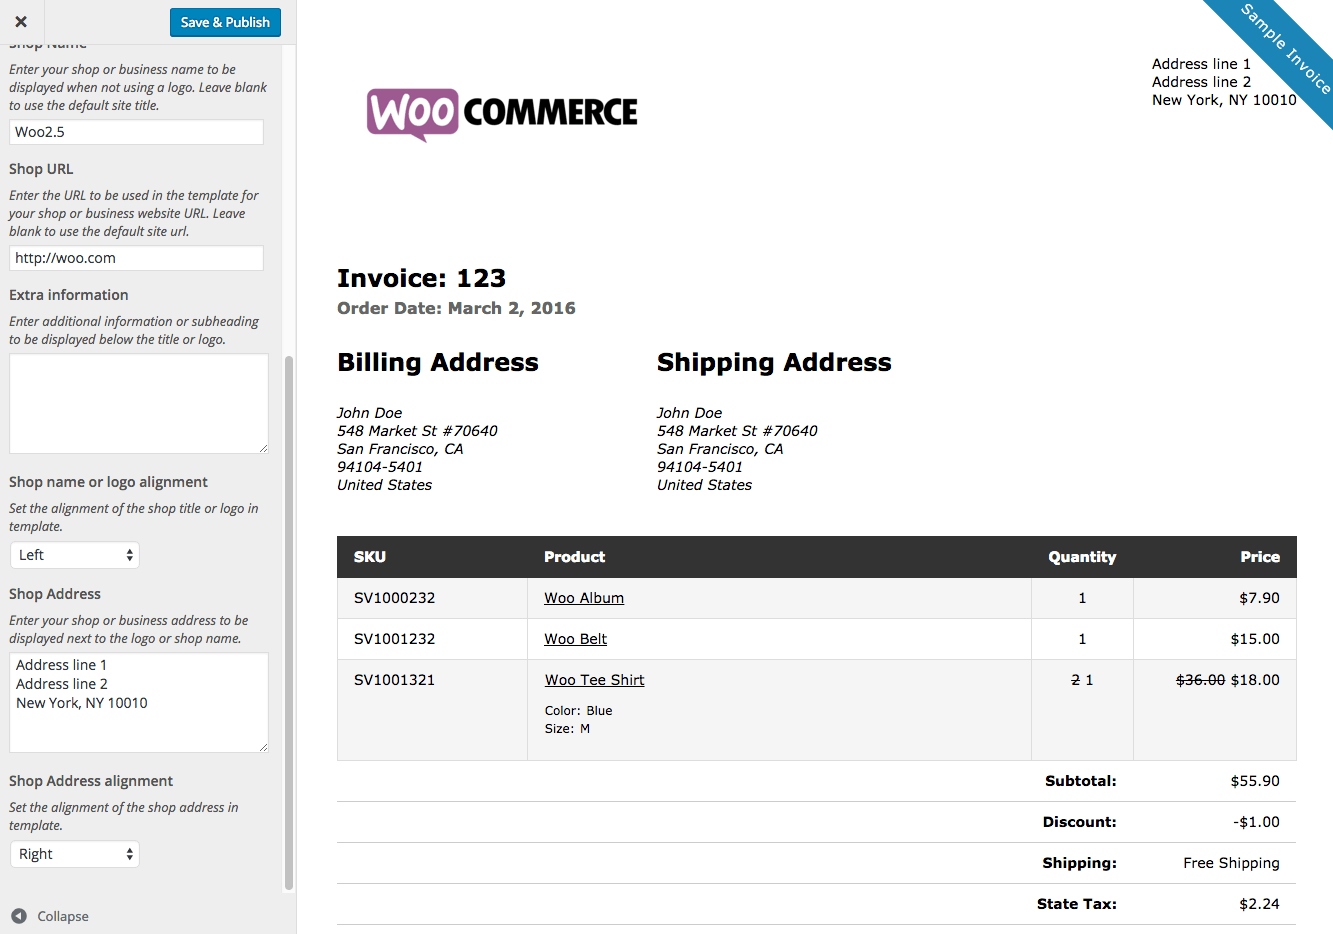 Weirdmailus  Remarkable Woocommerce Print Invoices Amp Packing Lists  Woocommerce Docs With Likable Woocommerce Print Invoices  Packing Lists Customizer With Breathtaking Graphic Design Invoice Template Word Also Scheduling And Invoicing Software In Addition How To Send Multiple Invoices In Quickbooks And Free Invoice Tracking Software As Well As Proforma Invoice Payment Terms Additionally Paypal Buyer Protection Invoice From Docswoocommercecom With Weirdmailus  Likable Woocommerce Print Invoices Amp Packing Lists  Woocommerce Docs With Breathtaking Woocommerce Print Invoices  Packing Lists Customizer And Remarkable Graphic Design Invoice Template Word Also Scheduling And Invoicing Software In Addition How To Send Multiple Invoices In Quickbooks From Docswoocommercecom